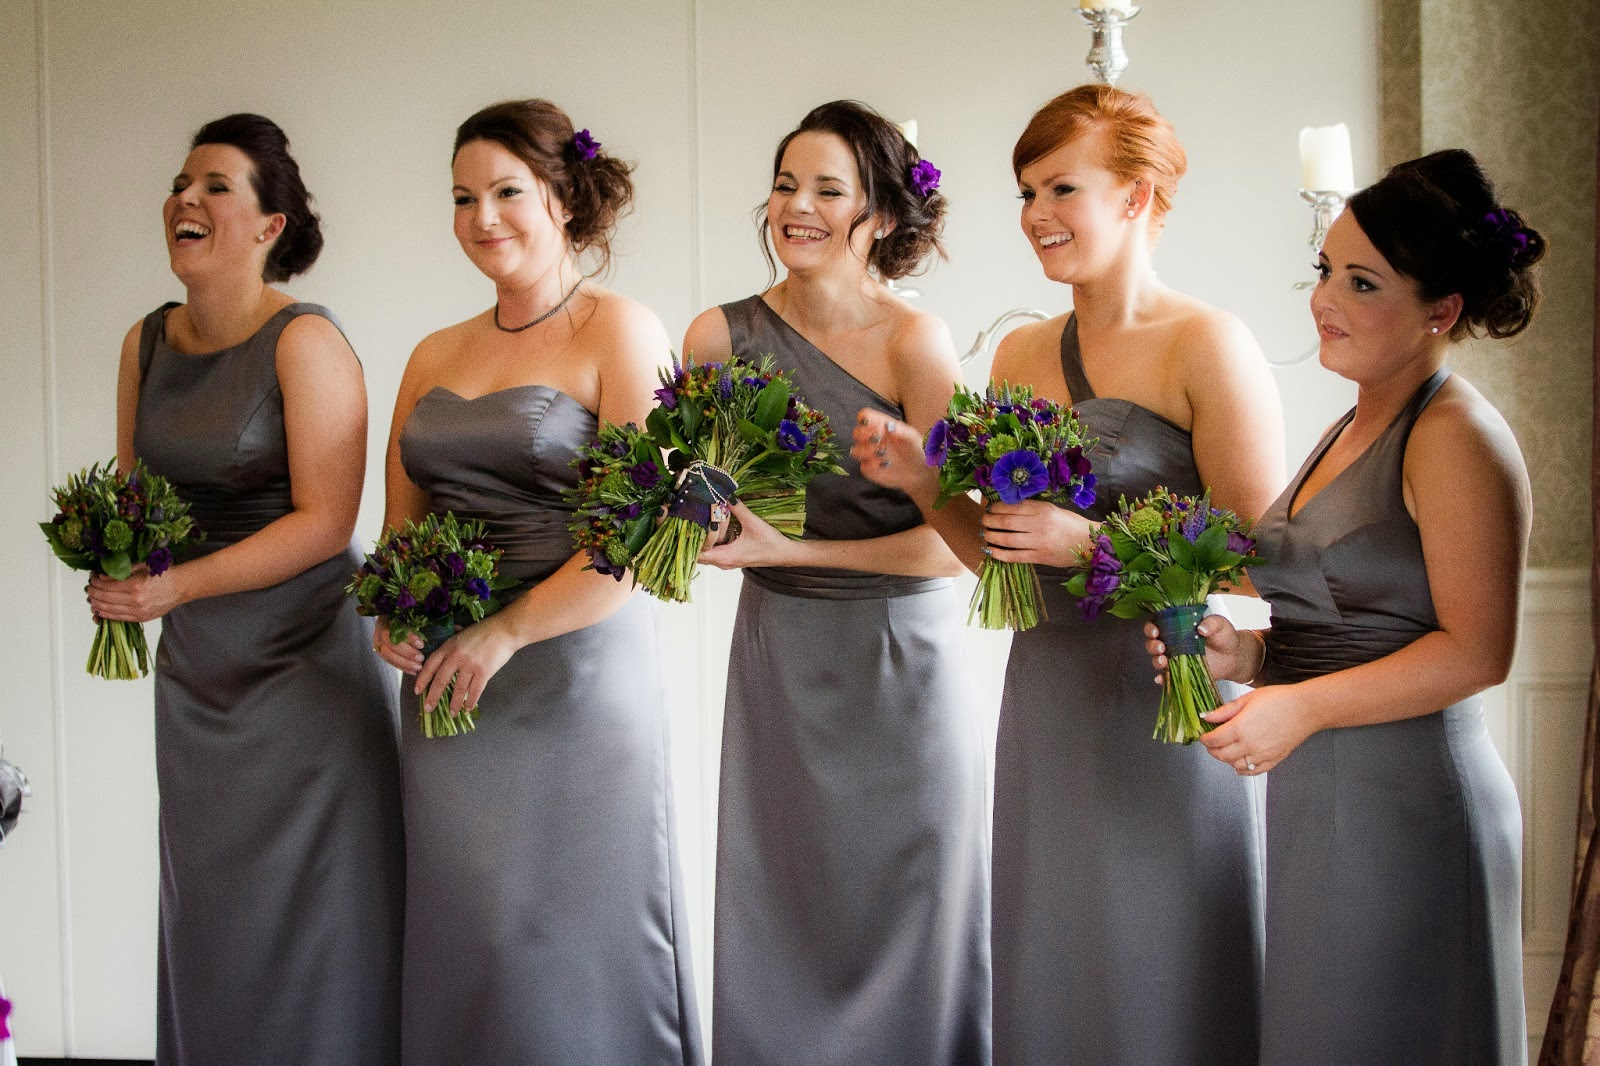 Bridesmaid dresses with different styles gallery braidsmaid different style same color bridesmaid dresses choice image different neckline bridesmaid dresses choice image braidsmaid bridesmaid ombrellifo Images